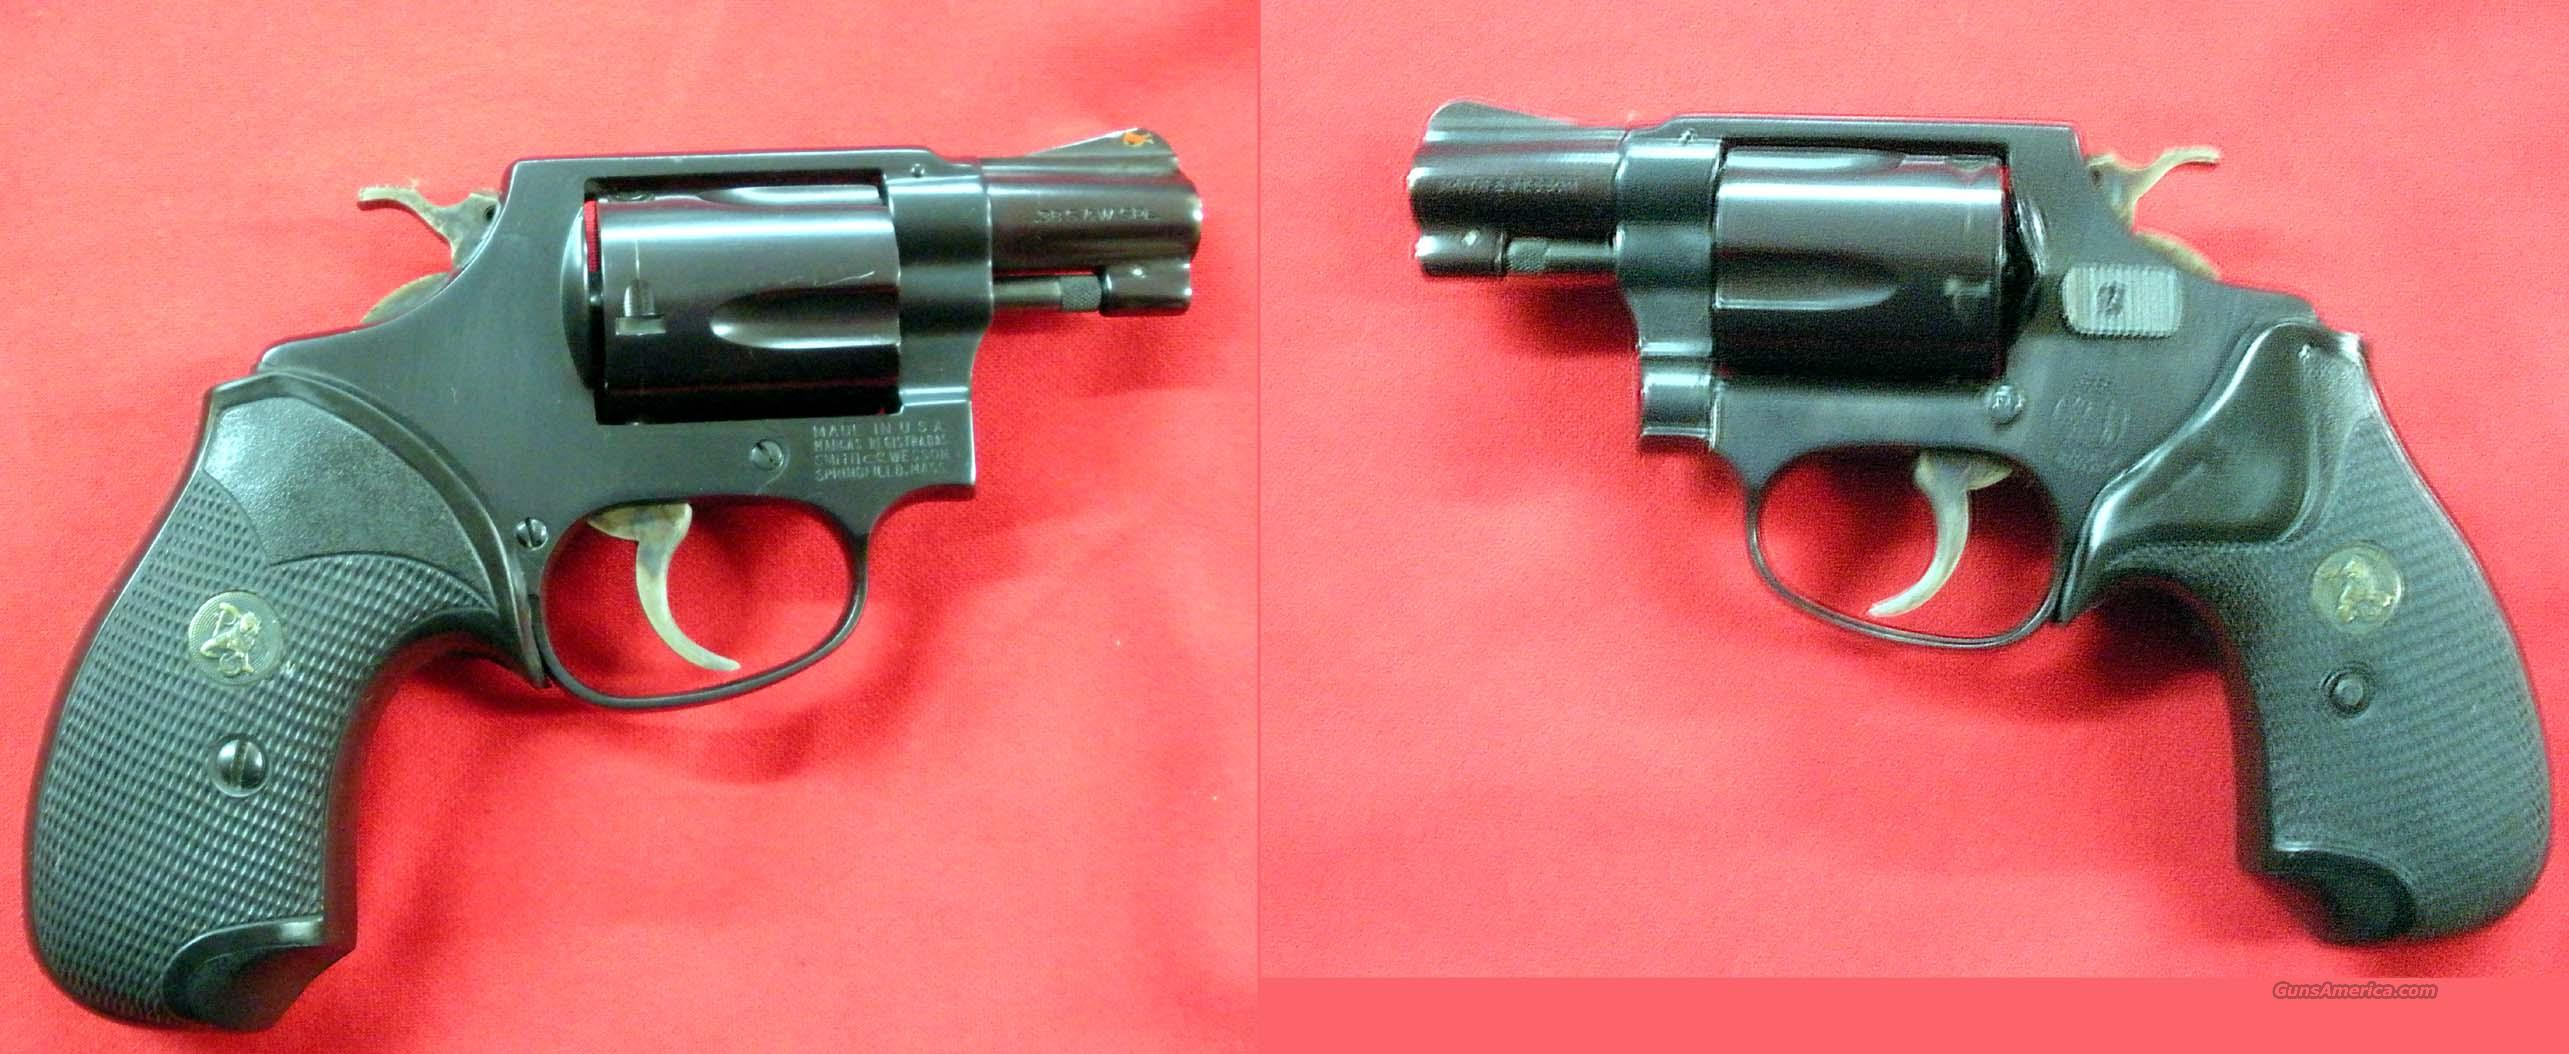 Mod 36  Guns > Pistols > Smith & Wesson Revolvers > Pocket Pistols